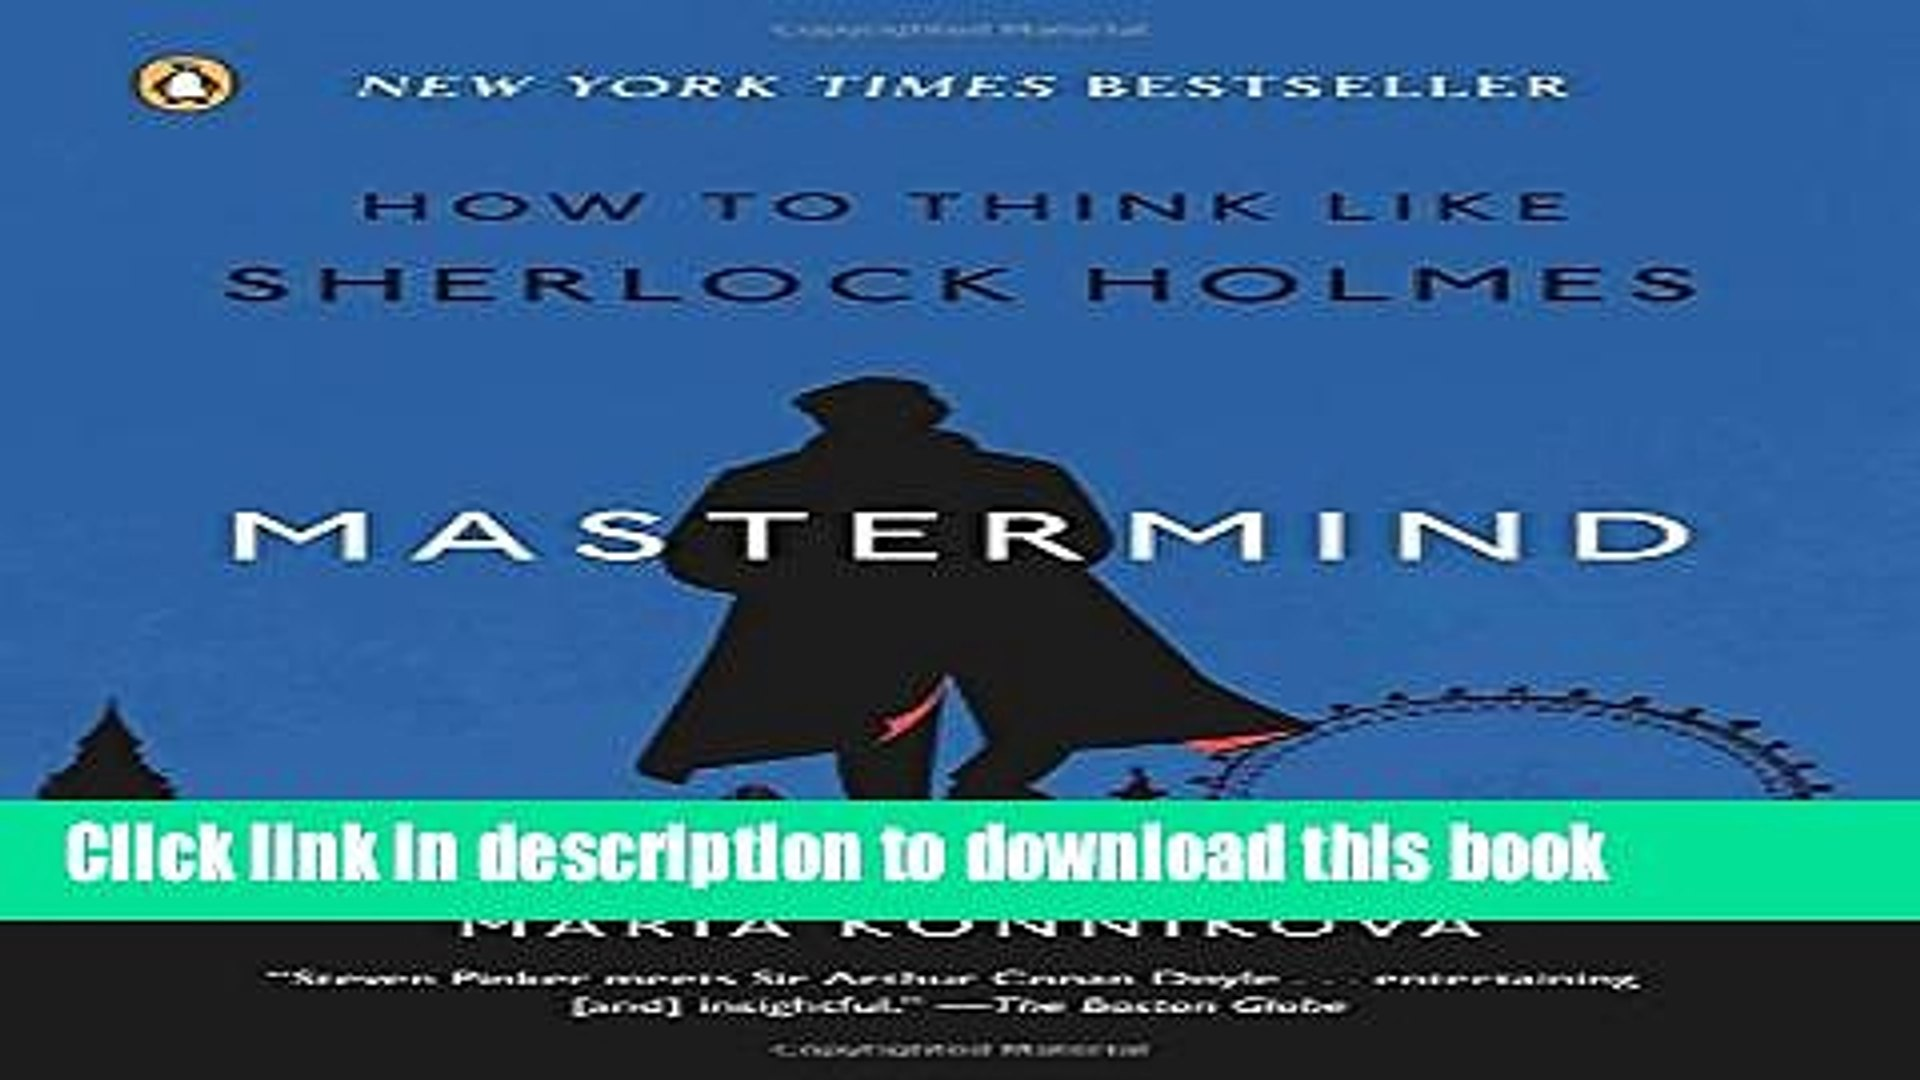 Books Mastermind: How to Think Like Sherlock Holmes Full Download